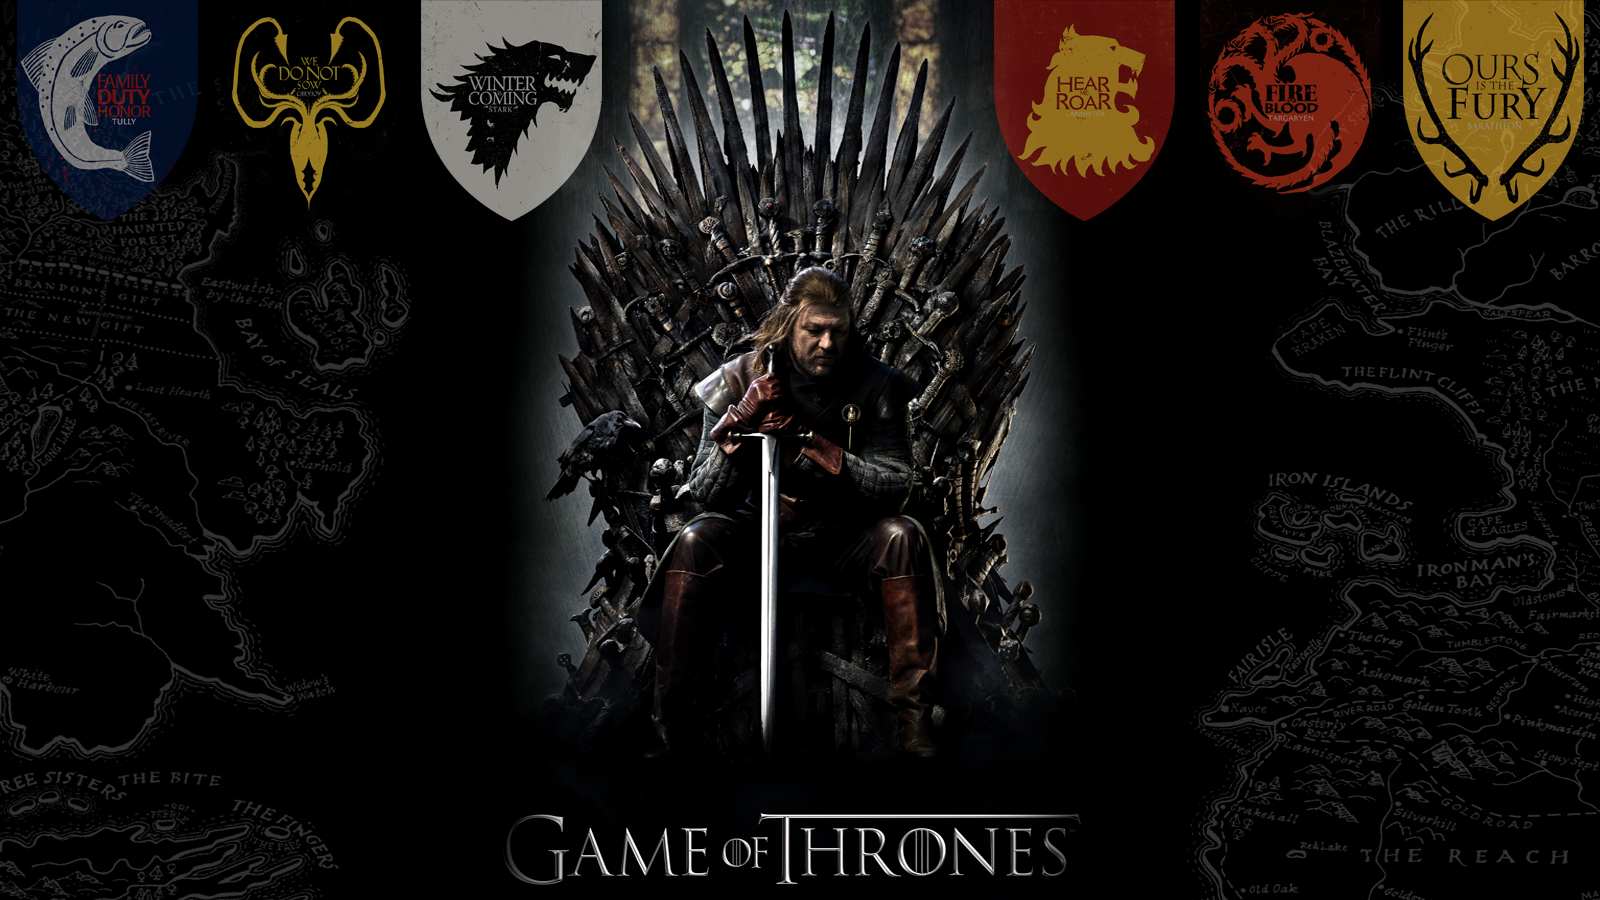 Game Of Thrones Board Game Hd Desktop Mobile Wallpaper Apps 1600x900